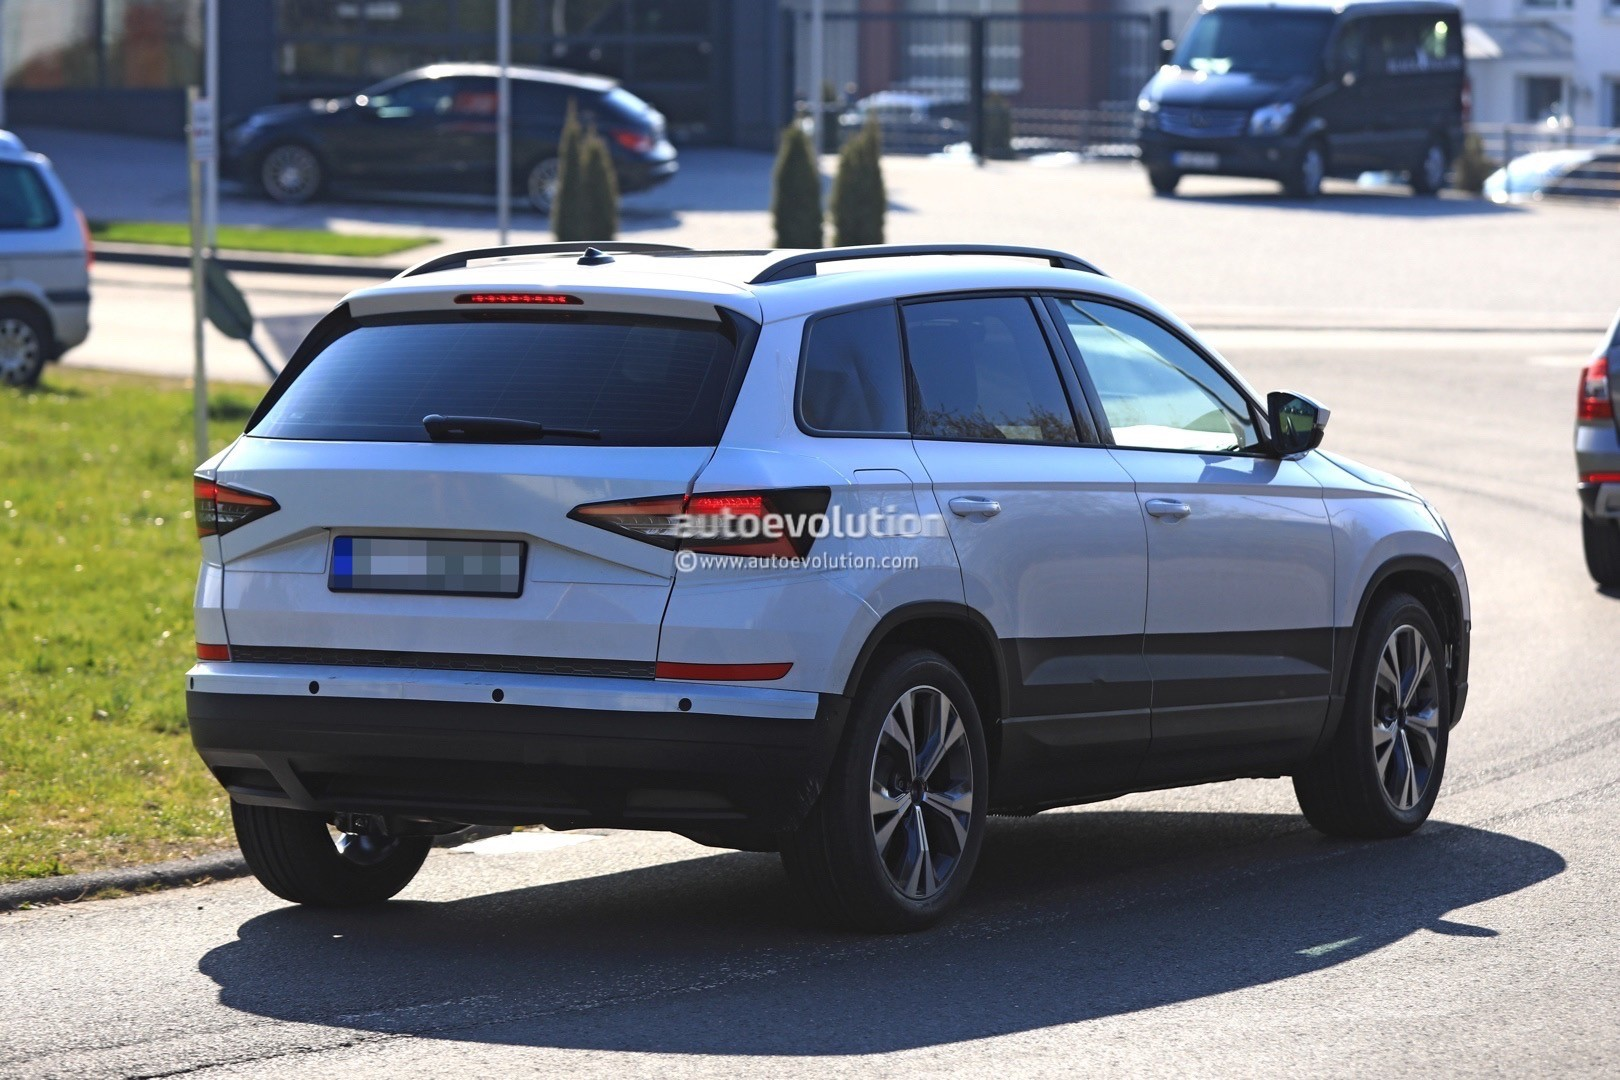 2018 skoda yeti replacement karoq gets into focus in new spy photos autoevolution. Black Bedroom Furniture Sets. Home Design Ideas